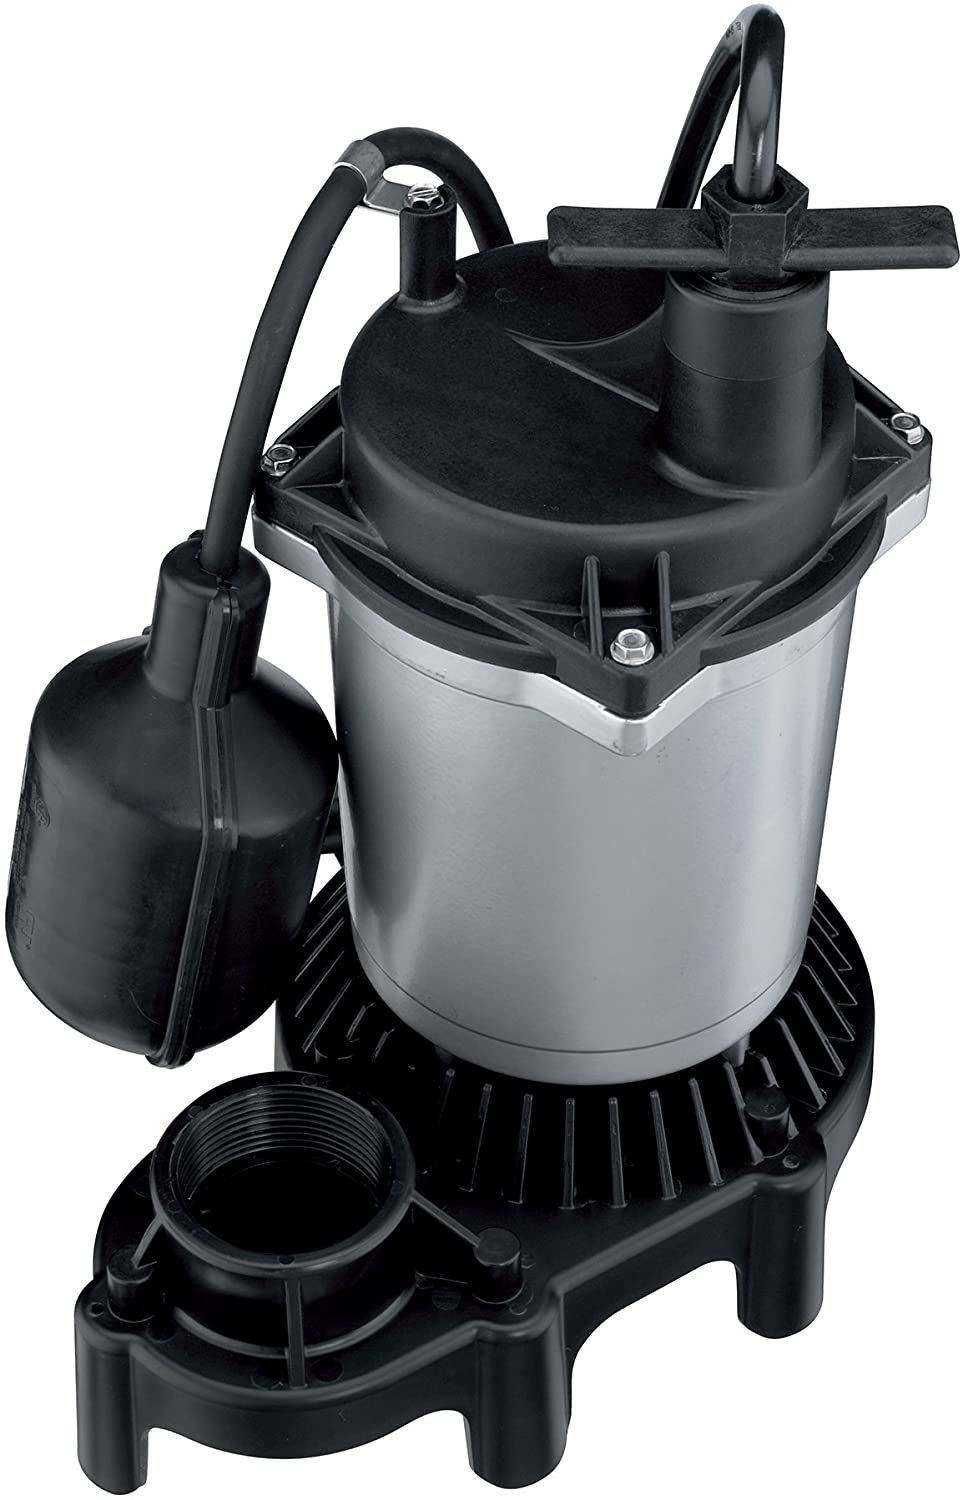 Flotec FPZS50T Submersible Sump Pump With Tethered float Switch, 4200 Gph, 1/2 Hp, 115 Vac, 60 Hz